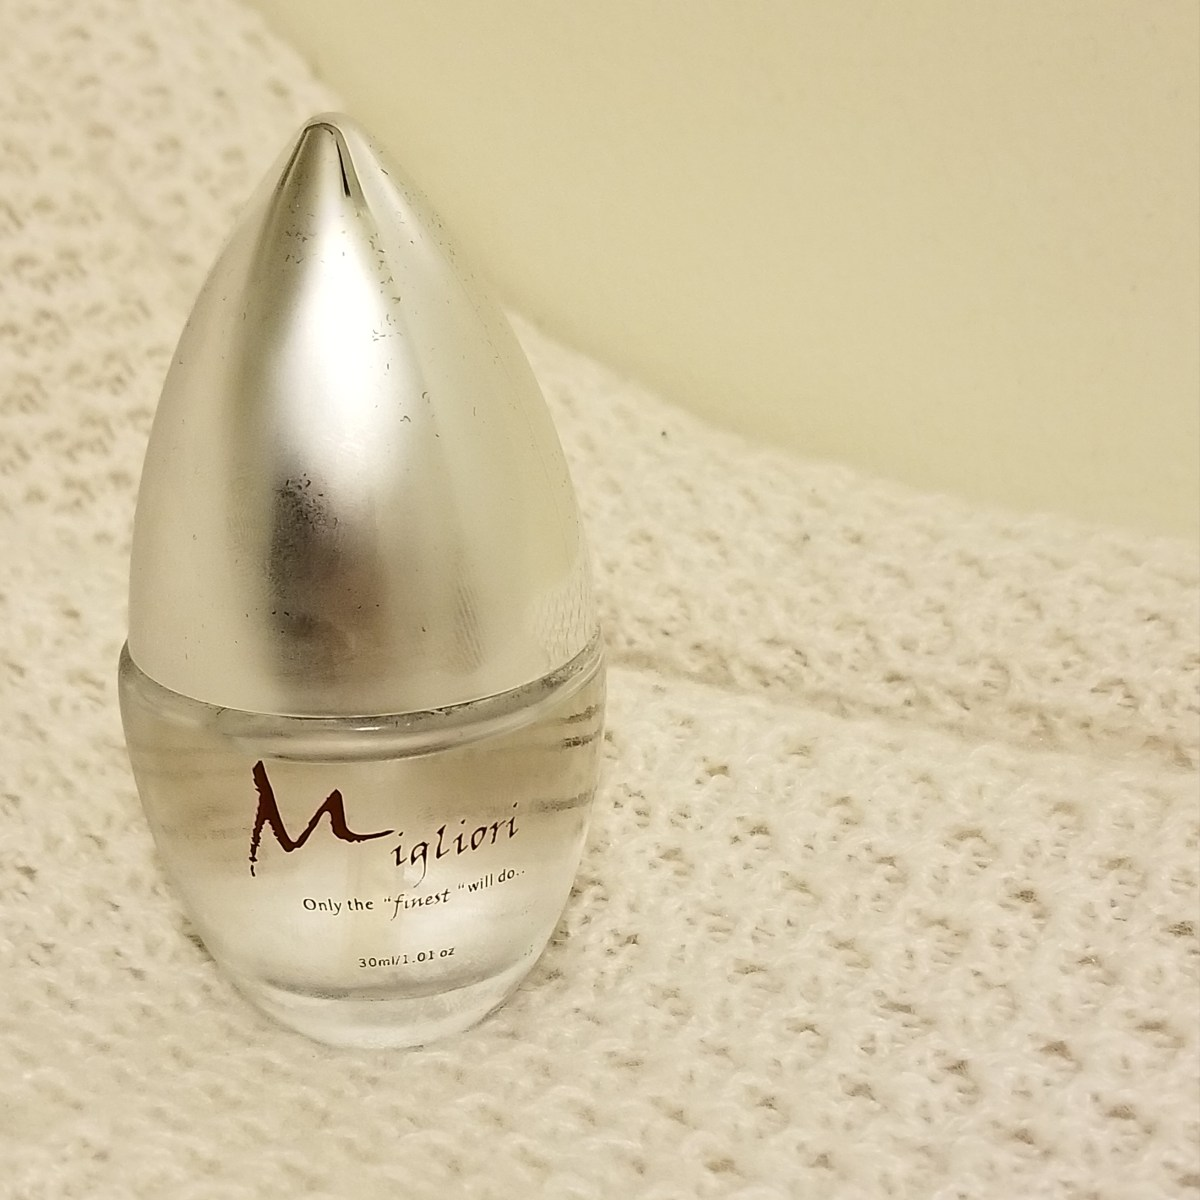 A glass bottle with a silver top sits on a knitted fabric. There is Migliori written on the bottle in a fancy font.